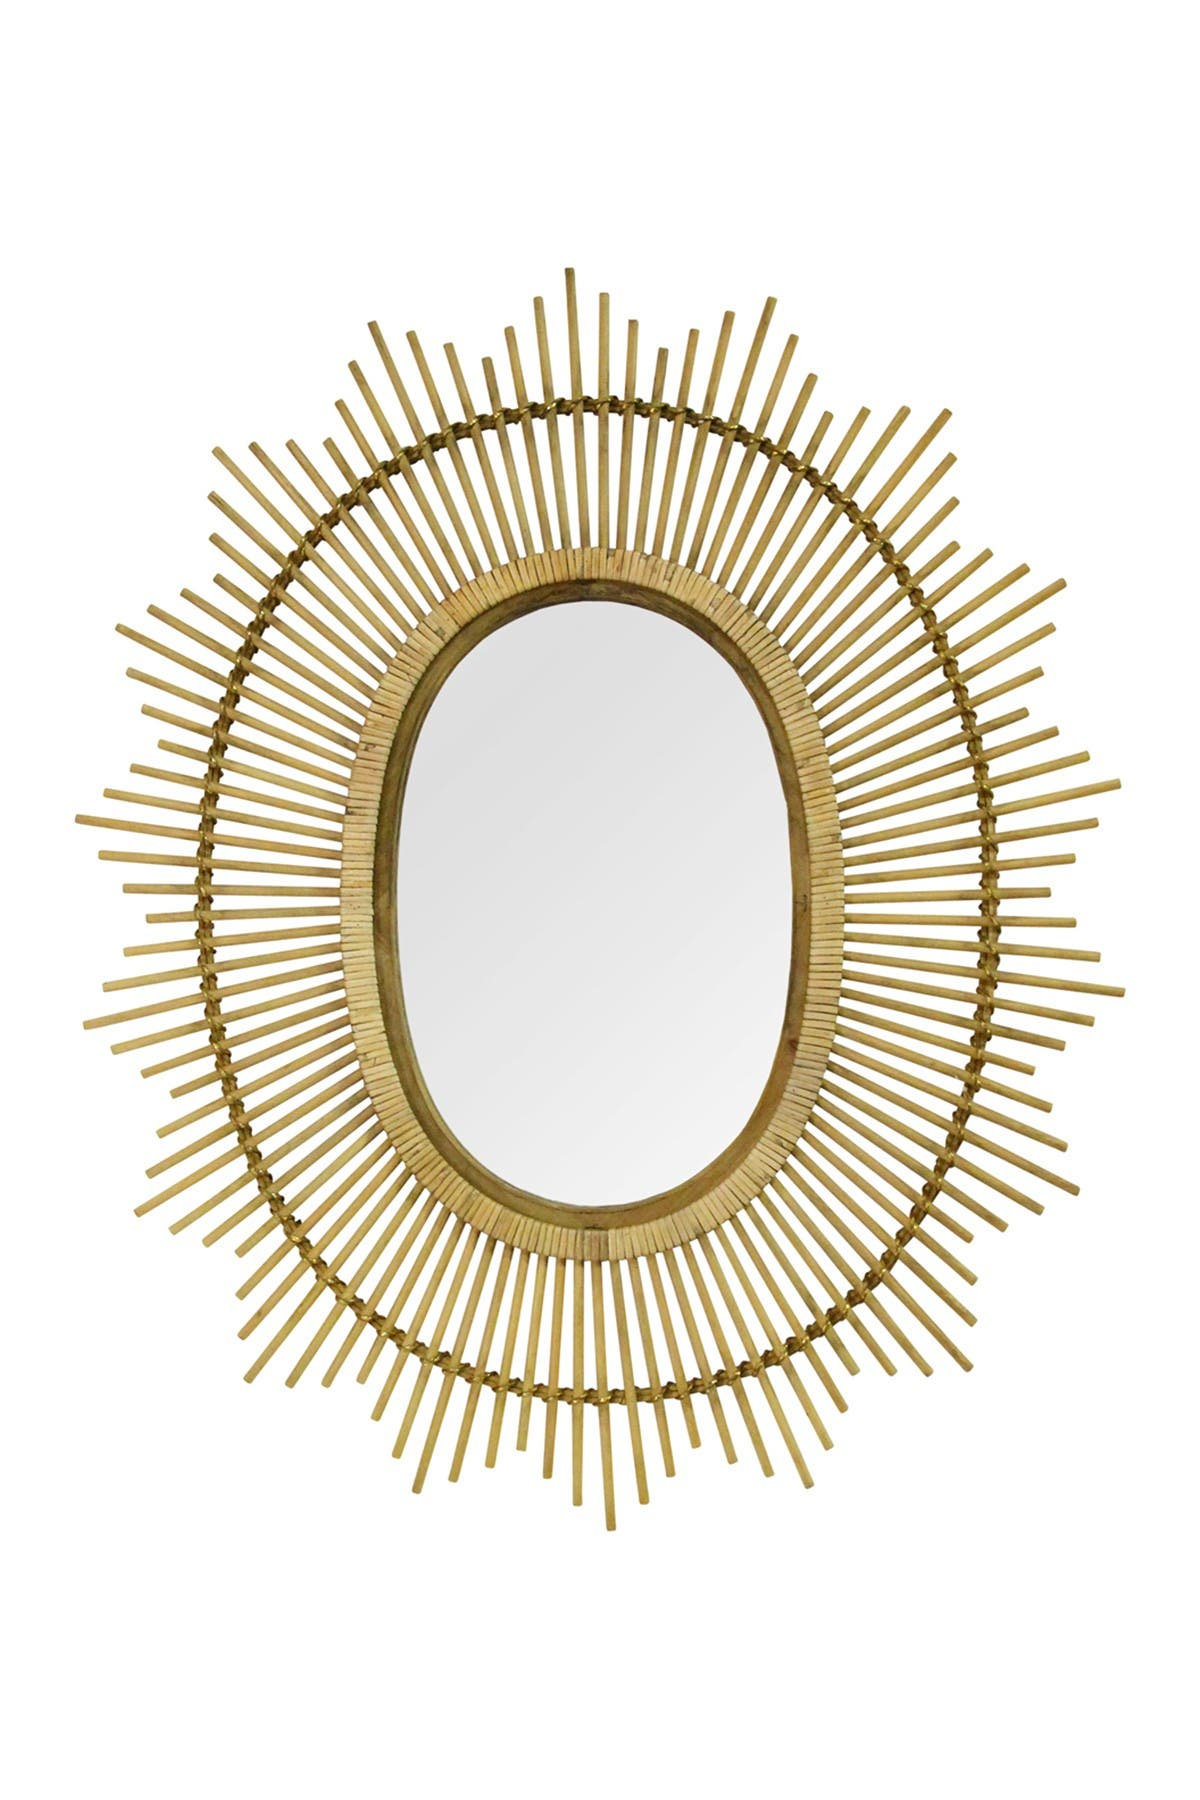 Stratton Home Light Brown Kelly Bamboo Oval Wall Mirror at Nordstrom Rack